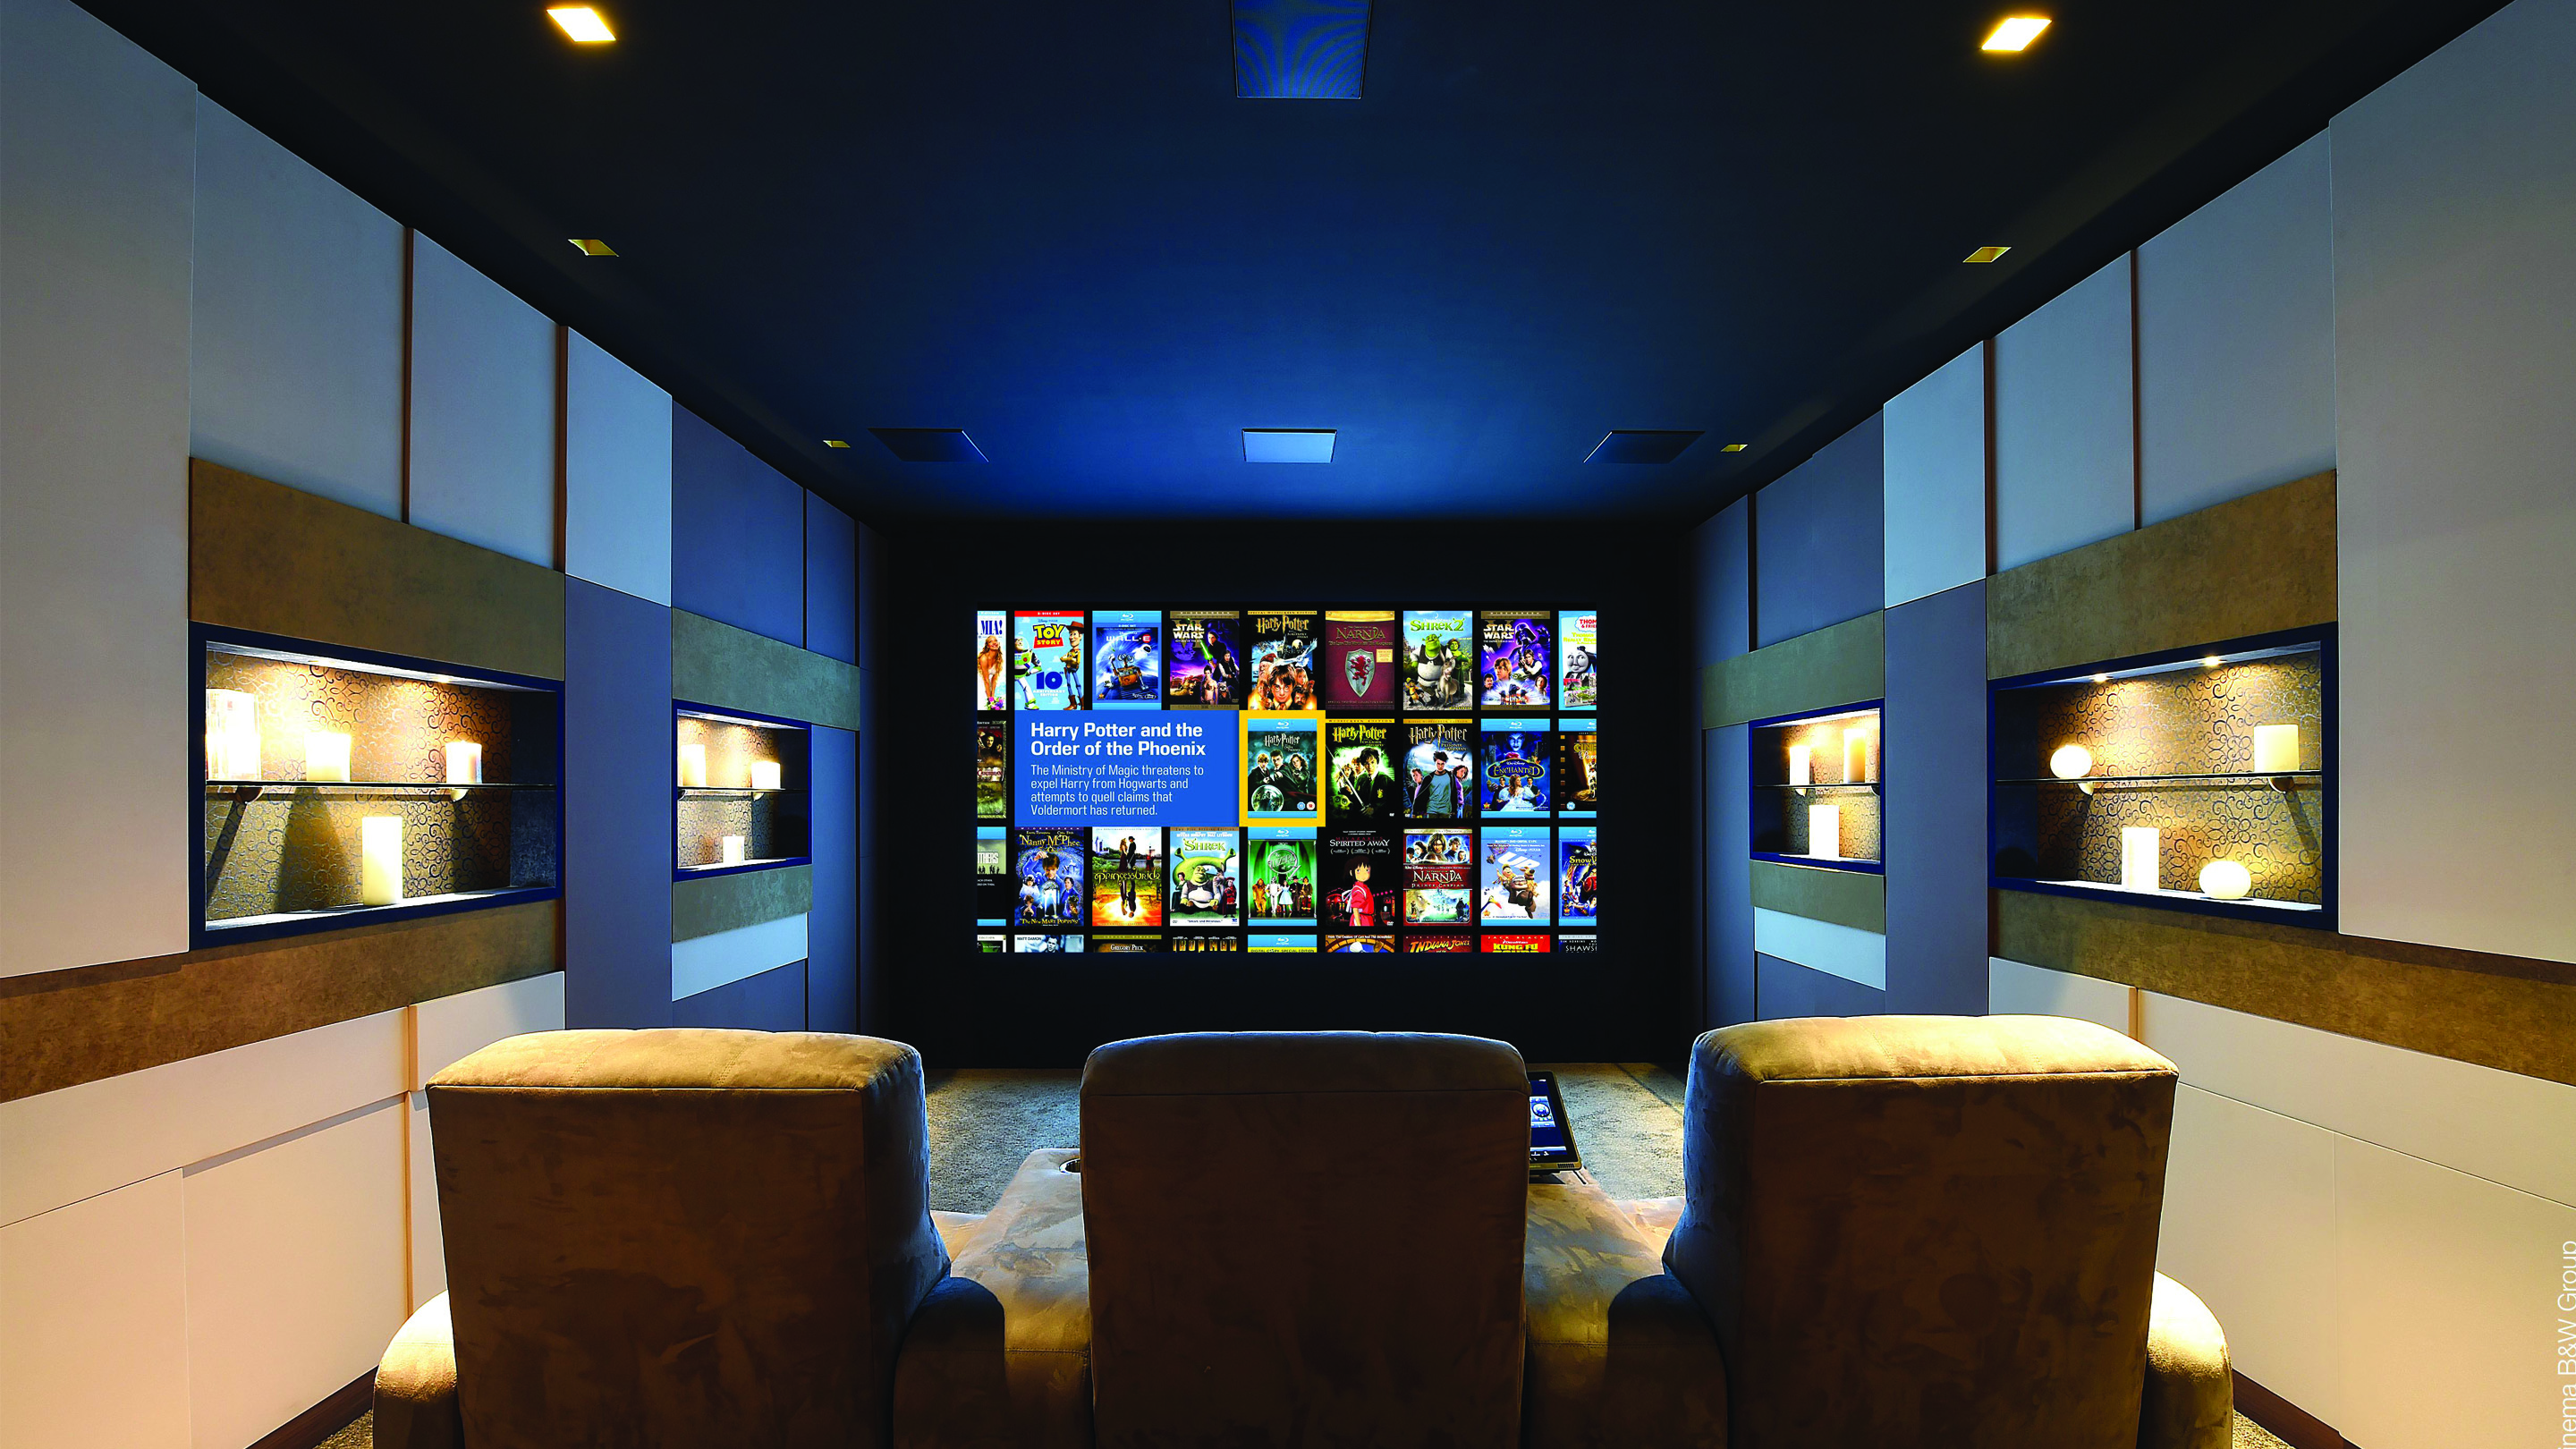 Diffusori da incasso a soffitto, home cinema domestico